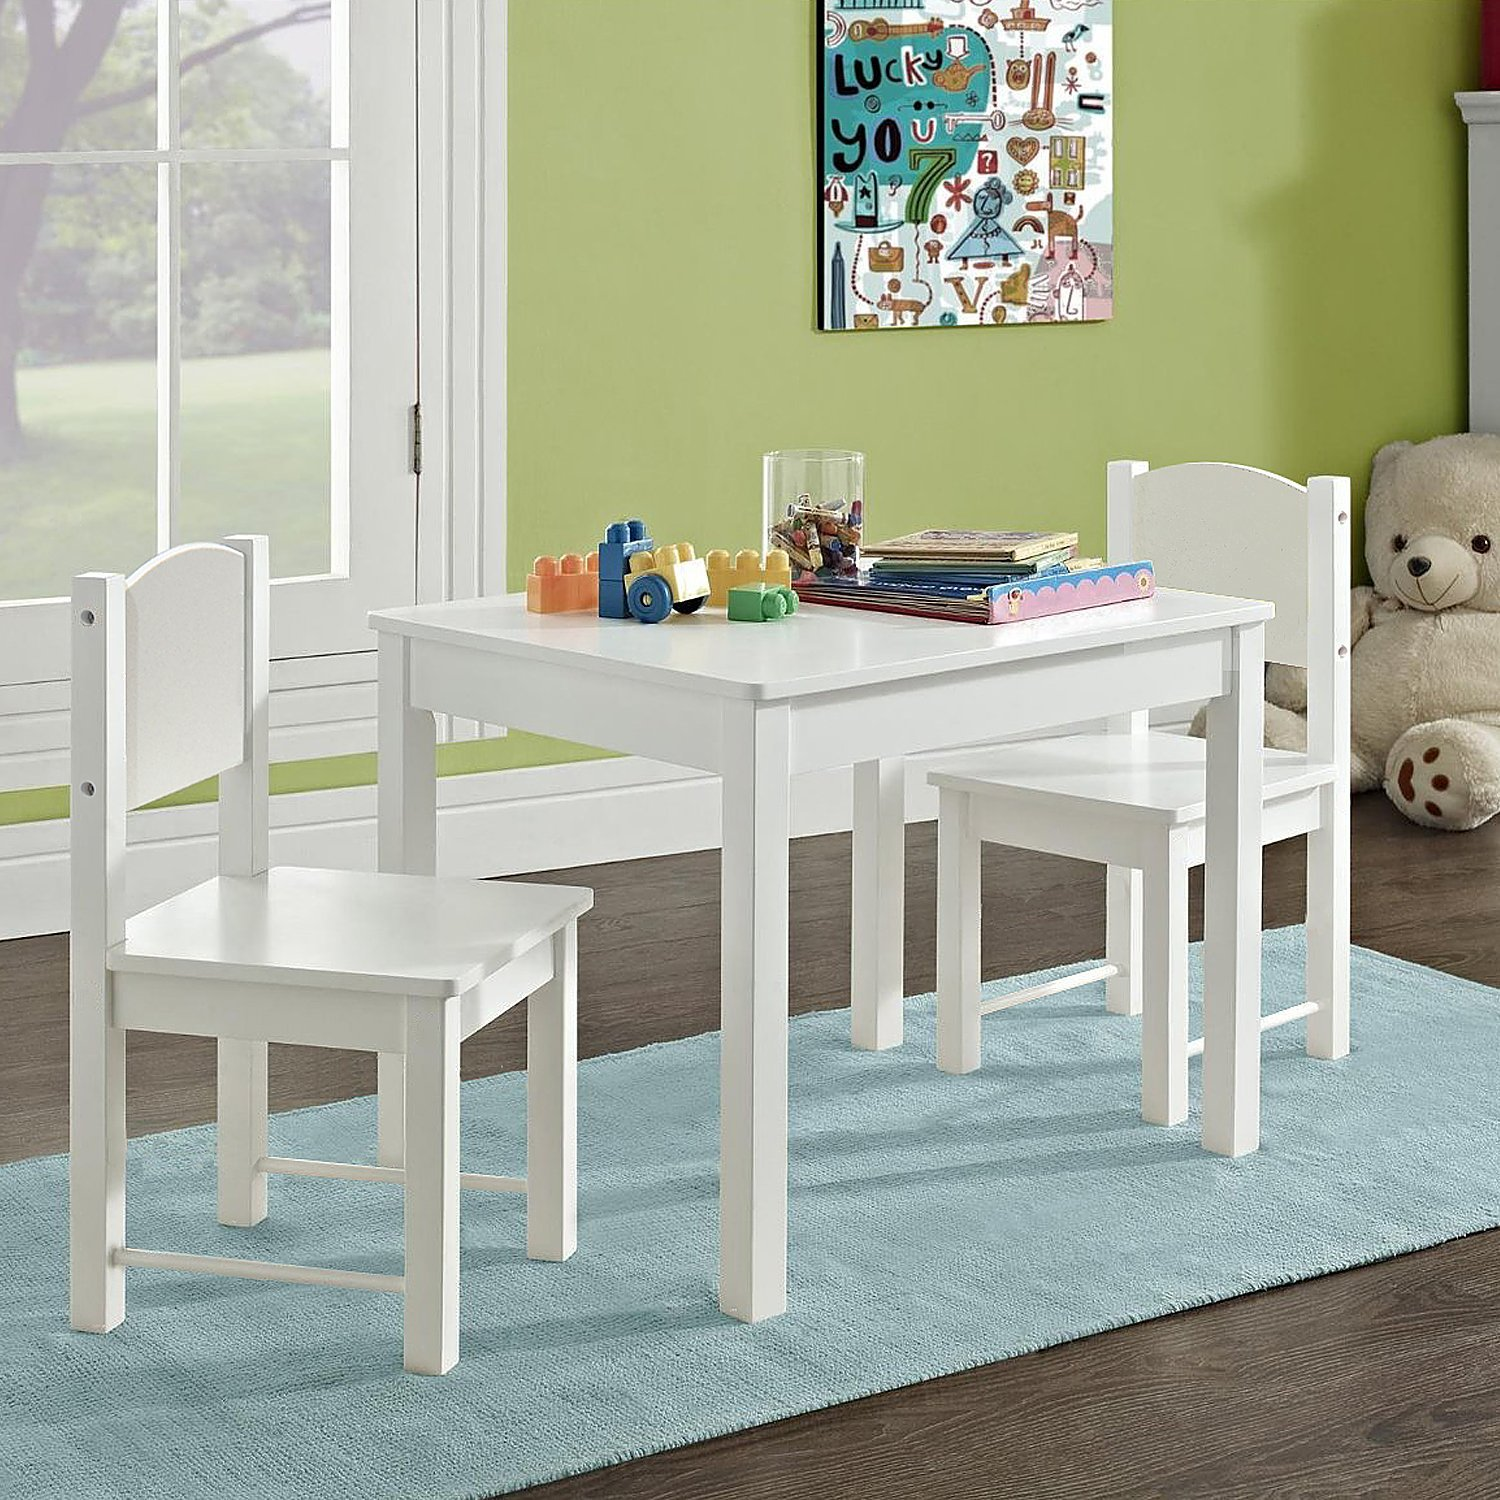 SimLife Wooden Kids Table and 2 Chairs Set [kidstable] - $139.99 ...